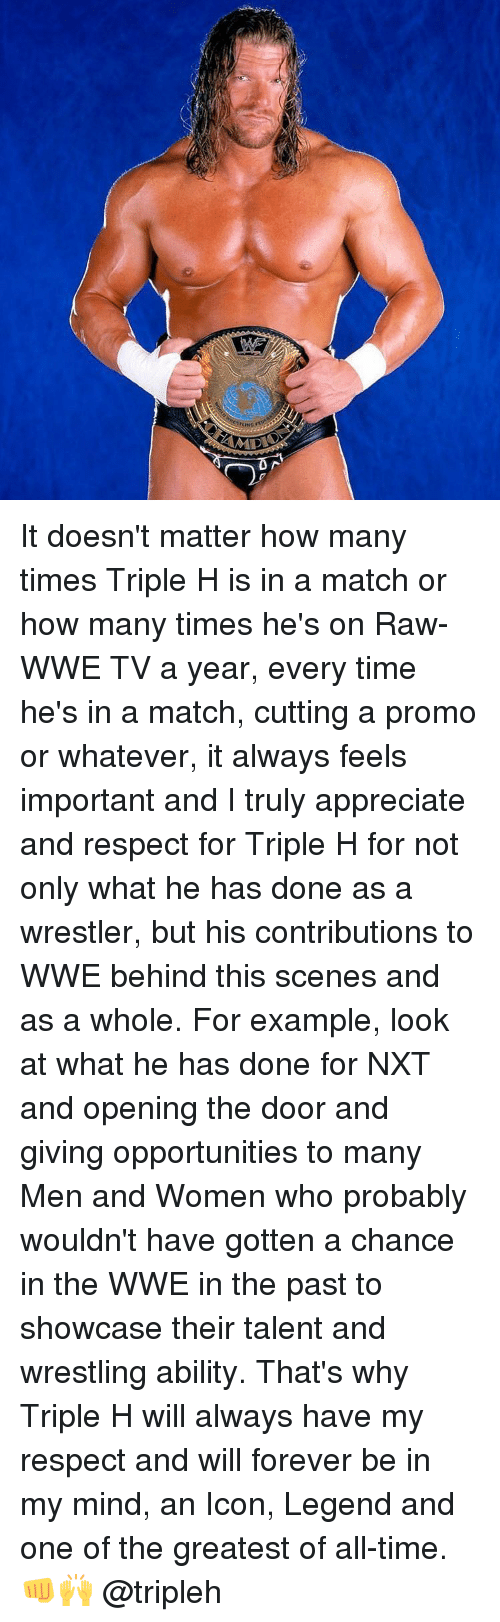 raw wwe: MID It doesn't matter how many times Triple H is in a match or how many times he's on Raw-WWE TV a year, every time he's in a match, cutting a promo or whatever, it always feels important and I truly appreciate and respect for Triple H for not only what he has done as a wrestler, but his contributions to WWE behind this scenes and as a whole. For example, look at what he has done for NXT and opening the door and giving opportunities to many Men and Women who probably wouldn't have gotten a chance in the WWE in the past to showcase their talent and wrestling ability. That's why Triple H will always have my respect and will forever be in my mind, an Icon, Legend and one of the greatest of all-time.👊🙌 @tripleh